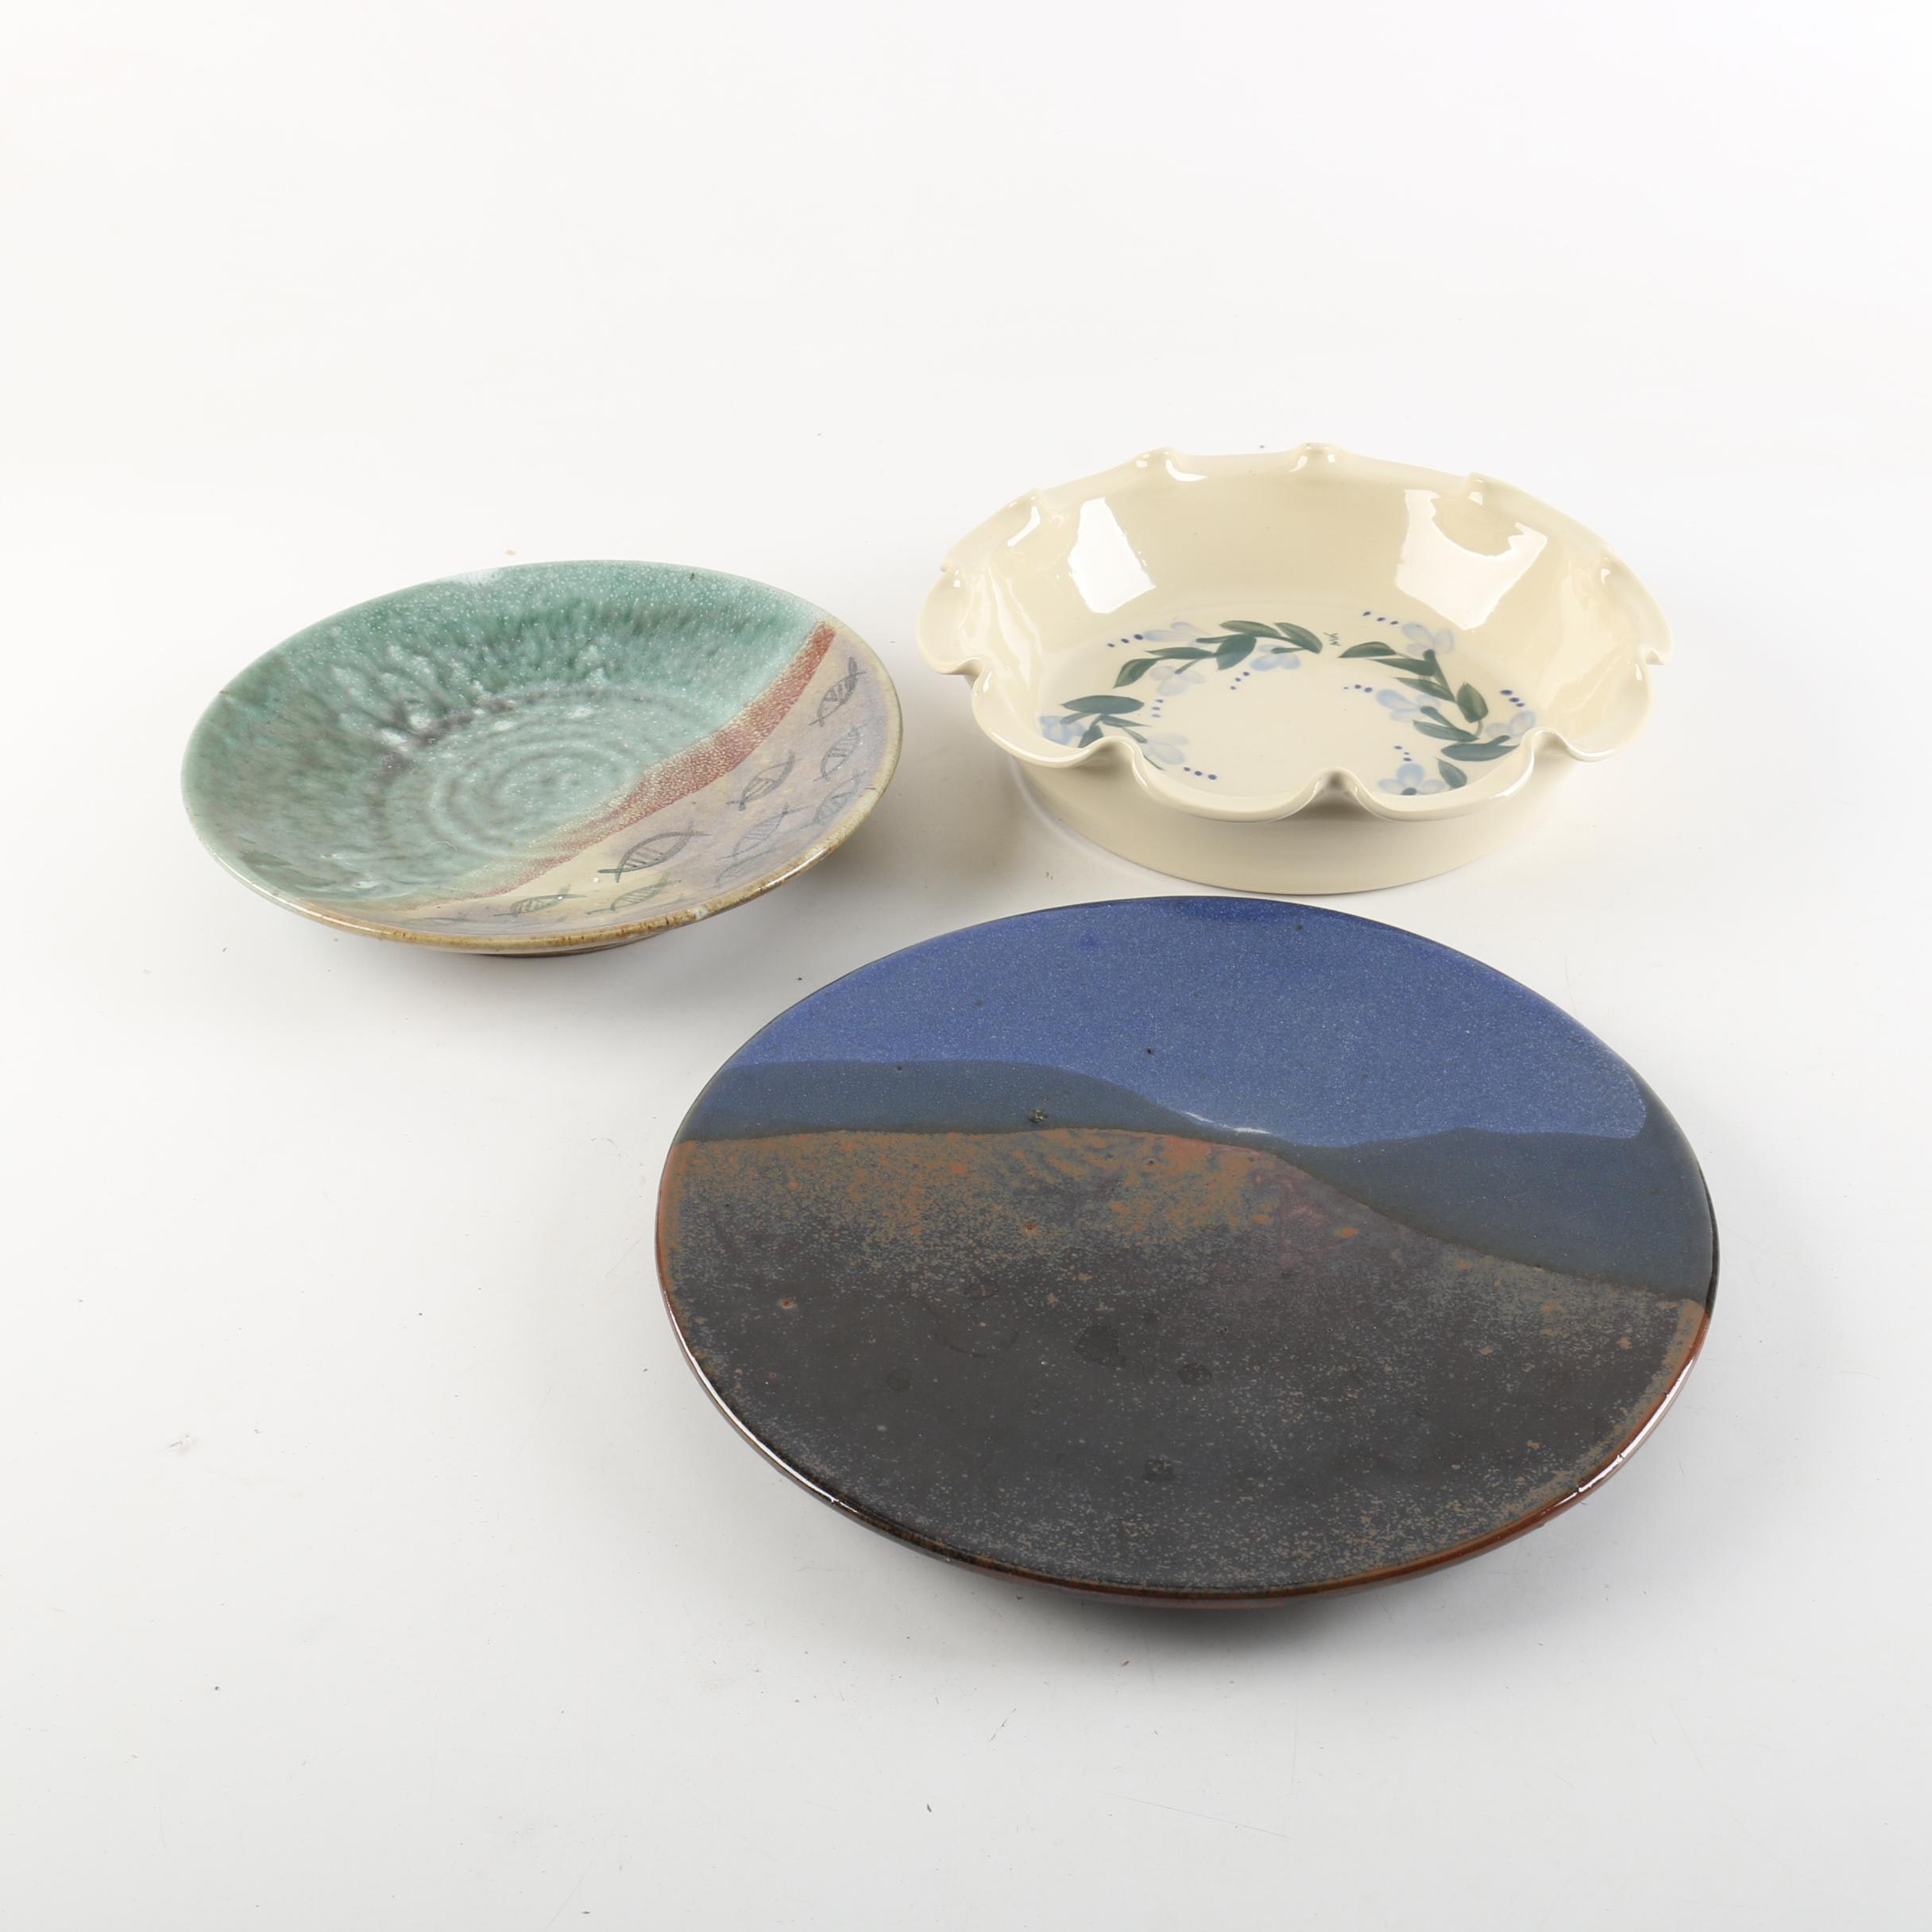 Handthrown Art Pottery Plates and Bowl